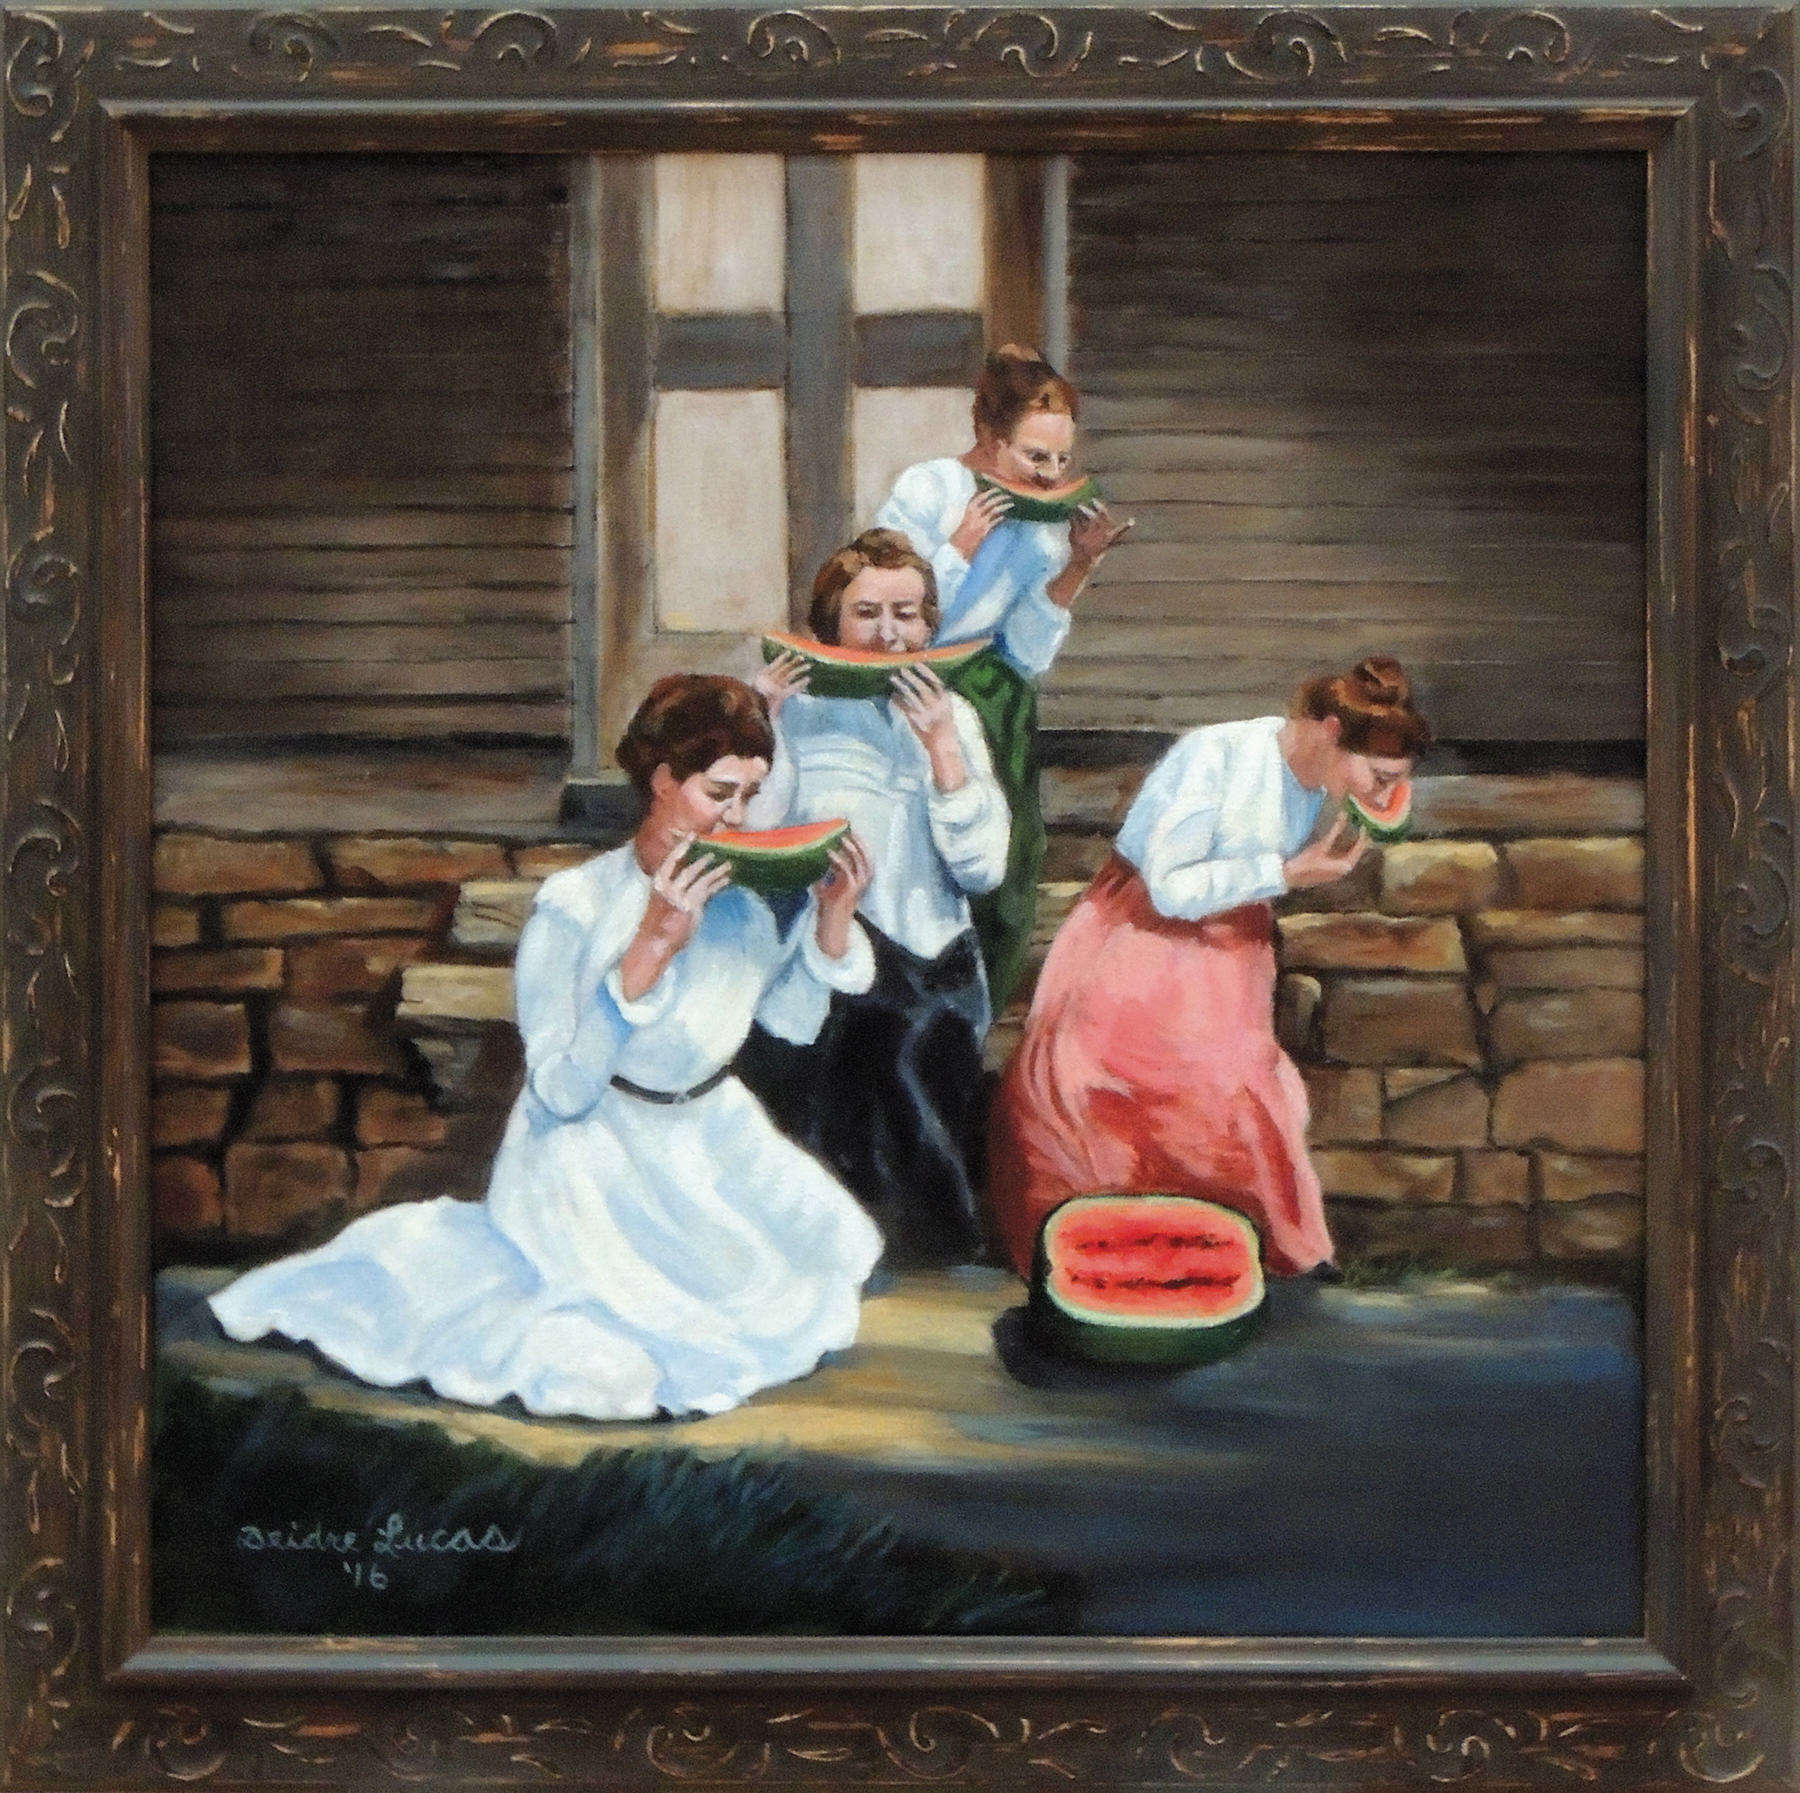 Deidre Lucas | WATERMELON LADIES | oil on canvas | Third Place